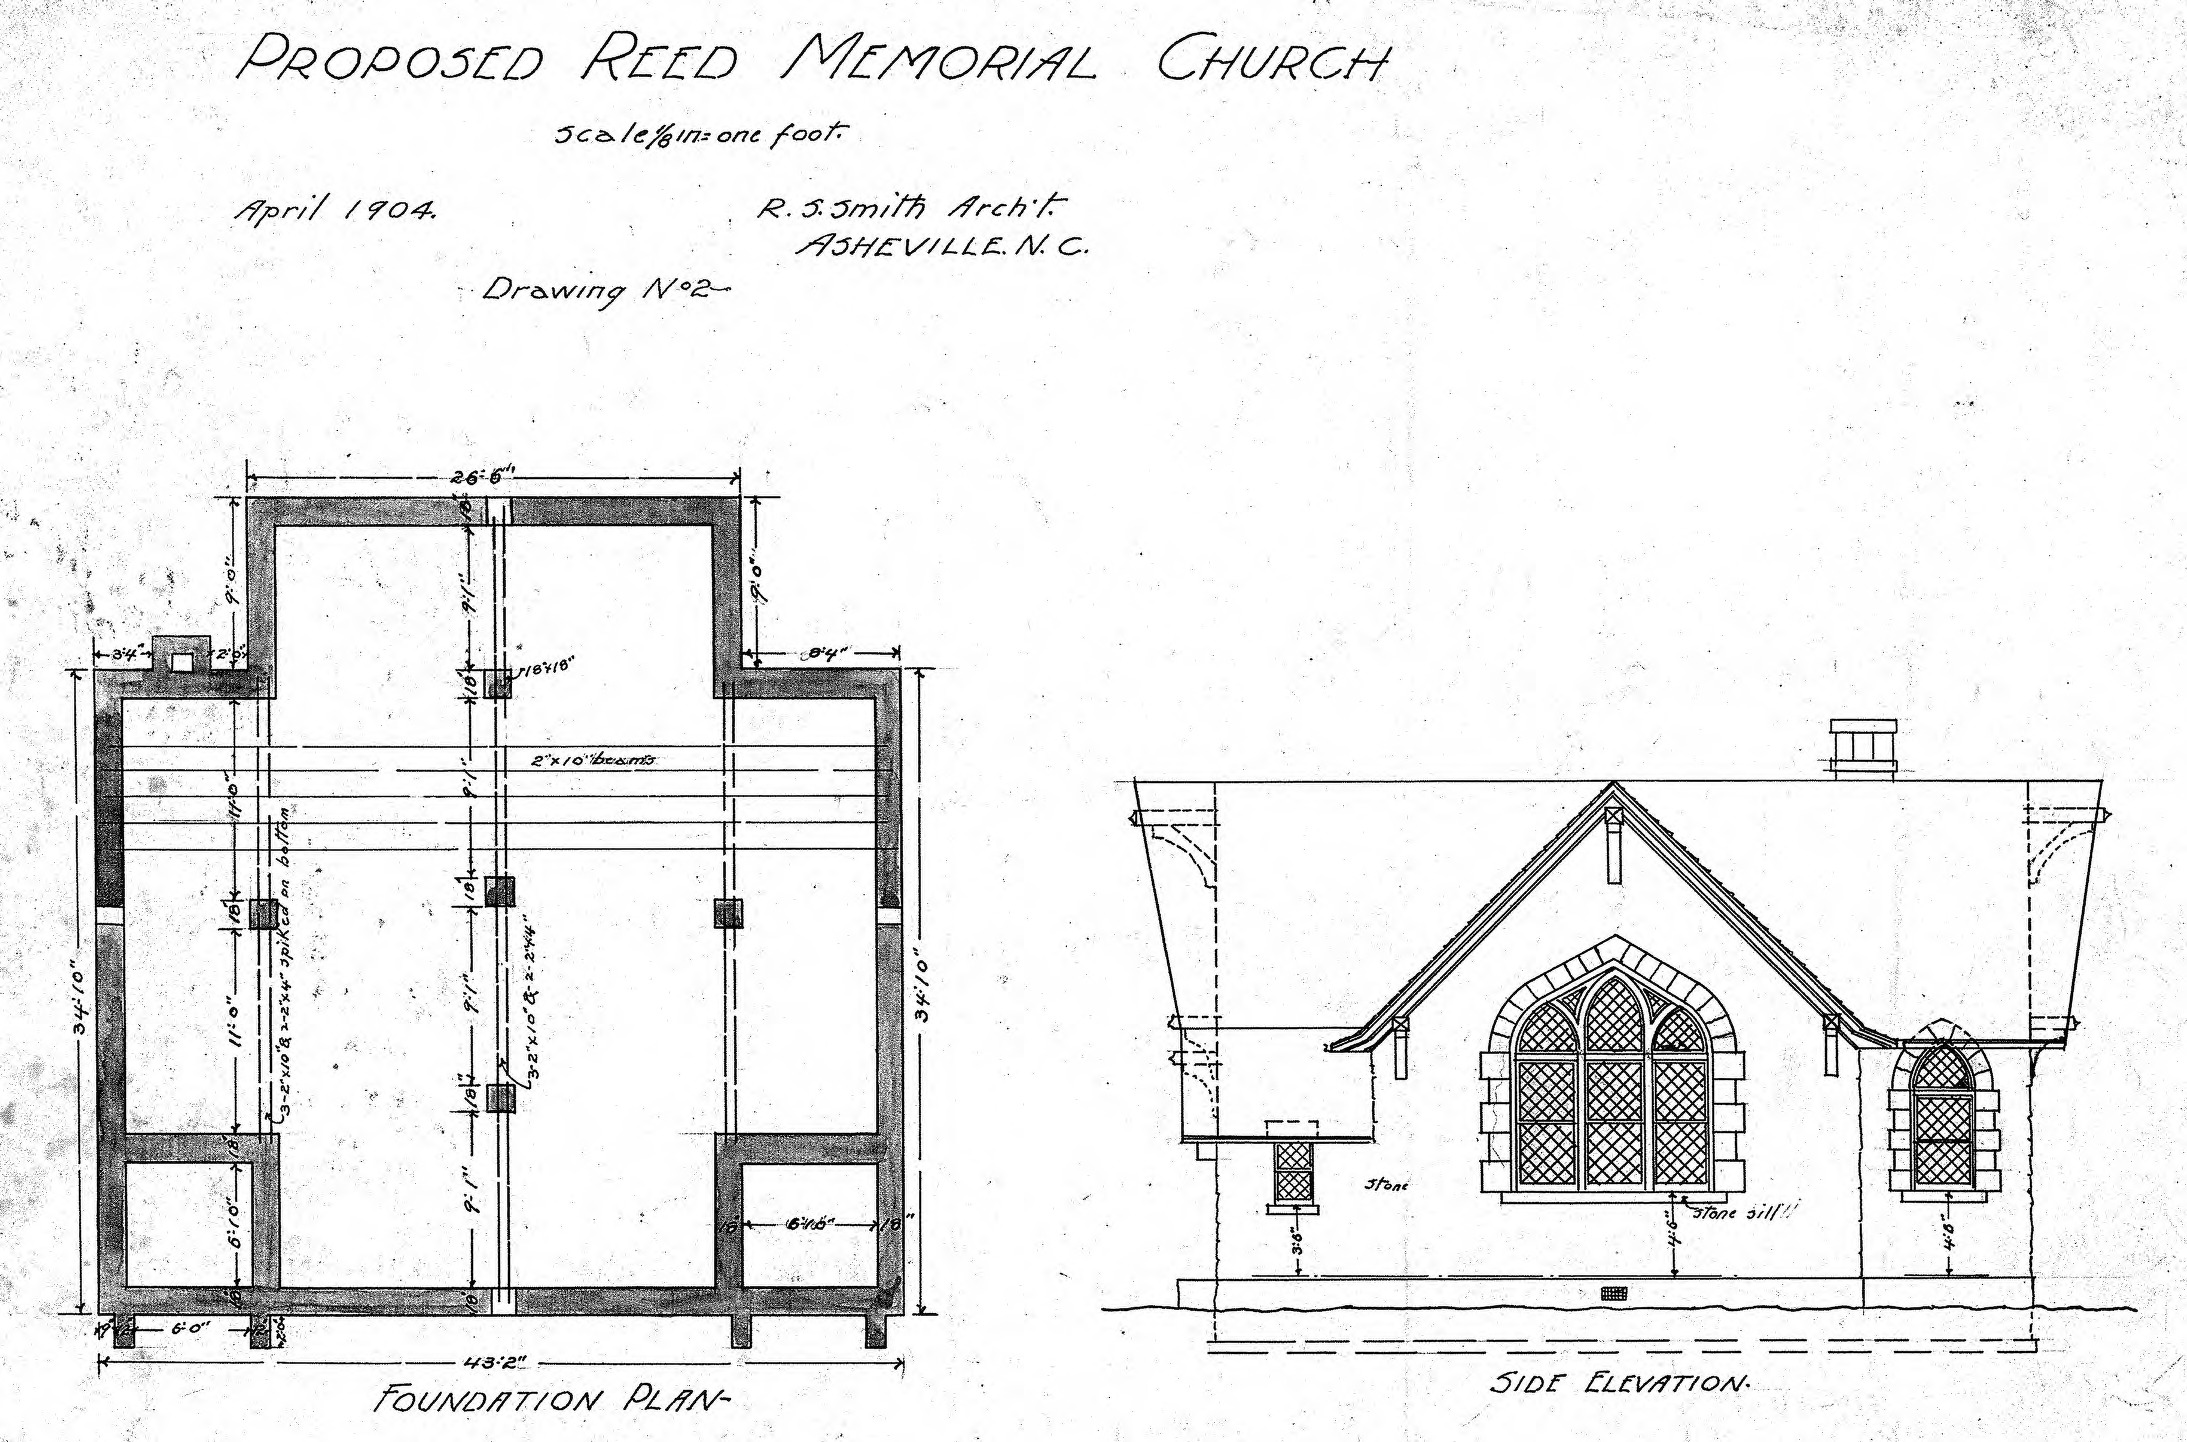 Church Elevation Plan : Proposed reed memorial church foundation plan side